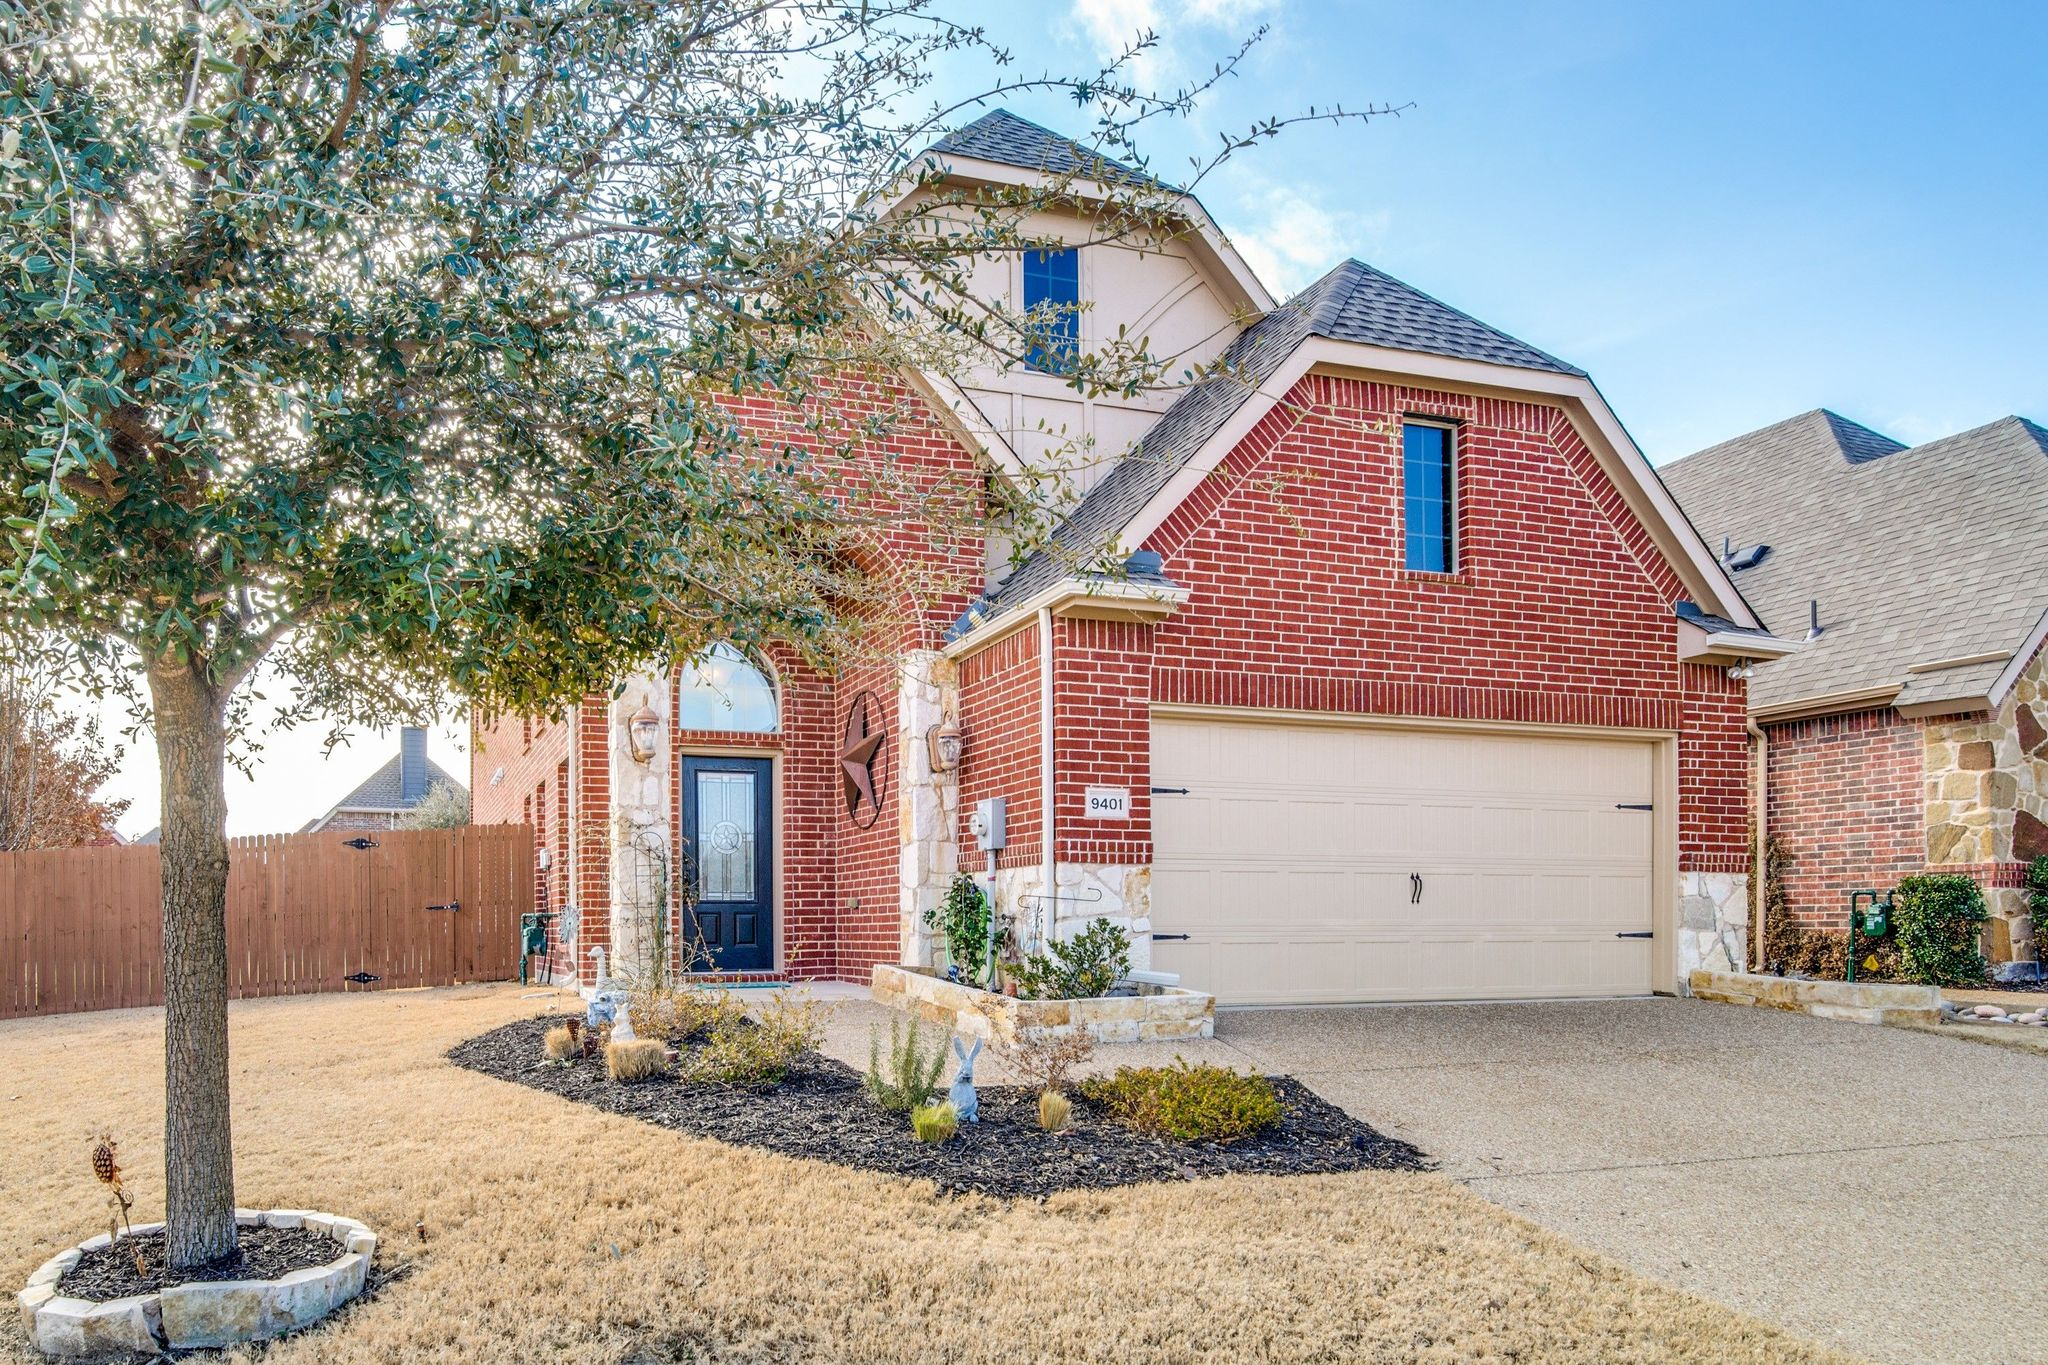 Here's the Completely New Image Of New Patio Homes for Sale In Mckinney Tx